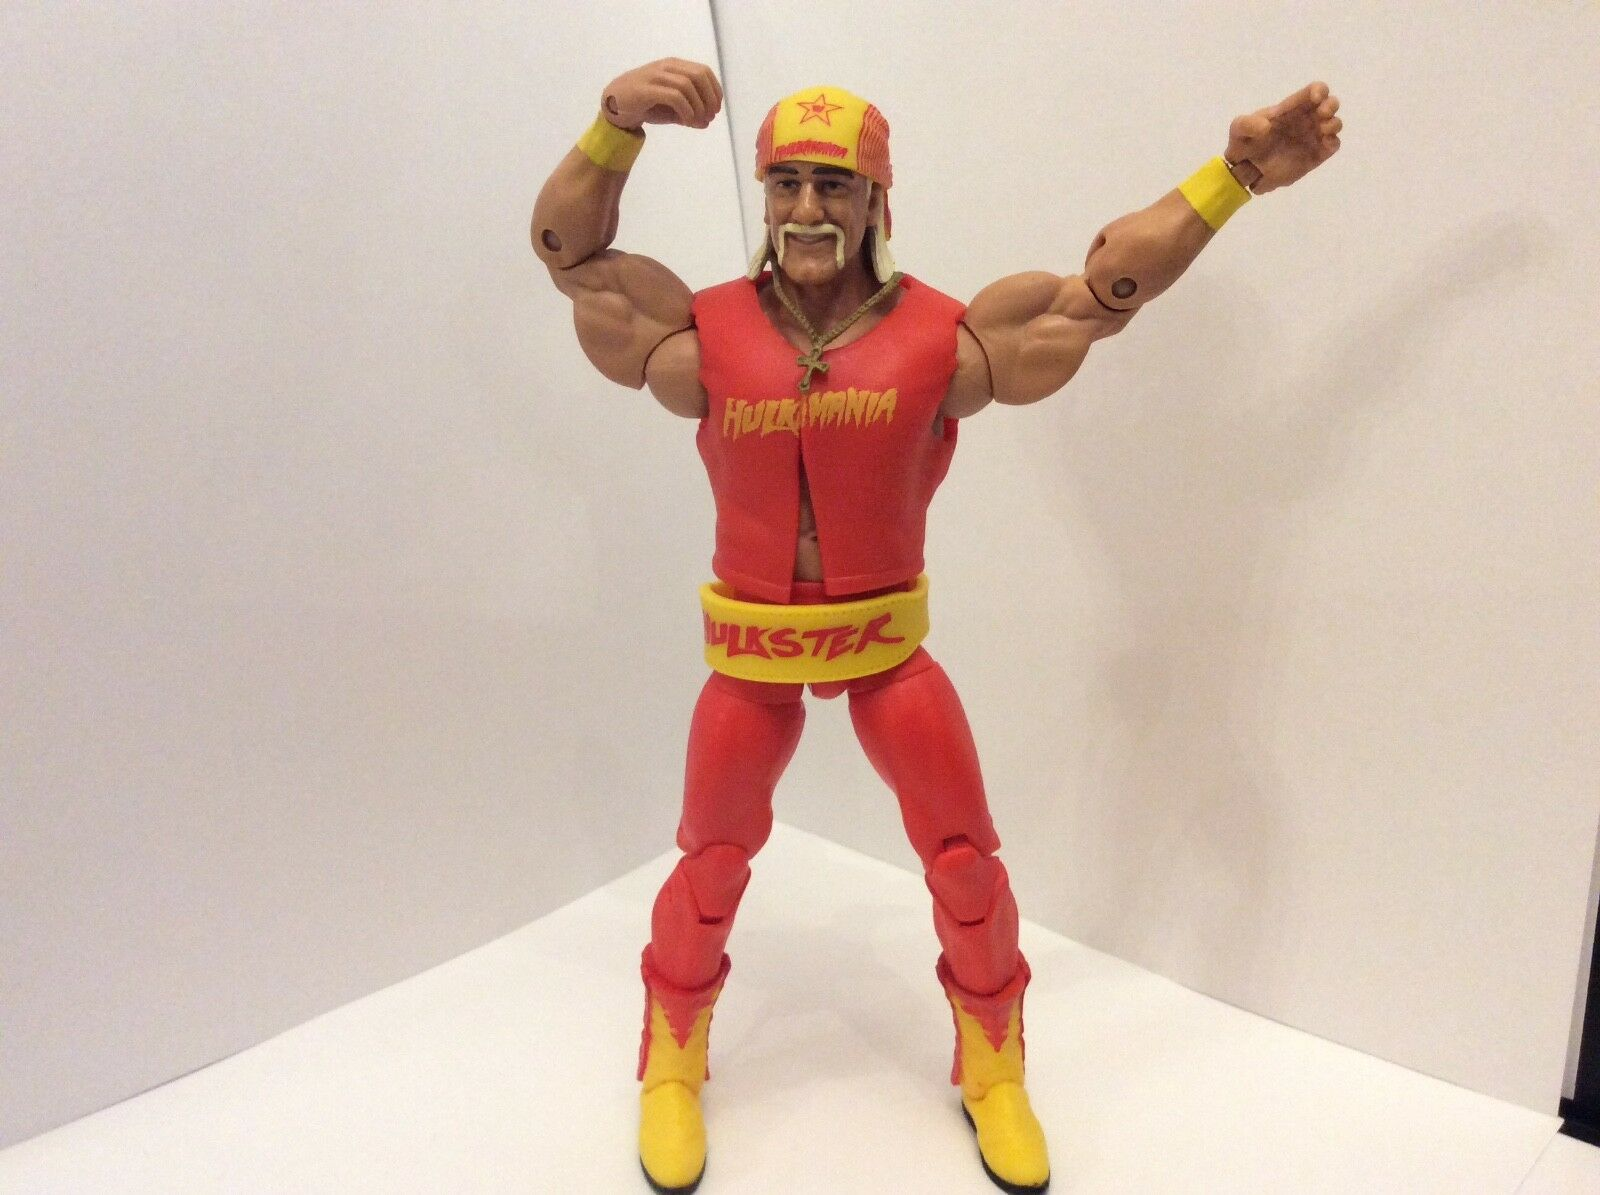 Rare wwe wwf tna hulk hogan hall of fame elite toy wrestling figure complete